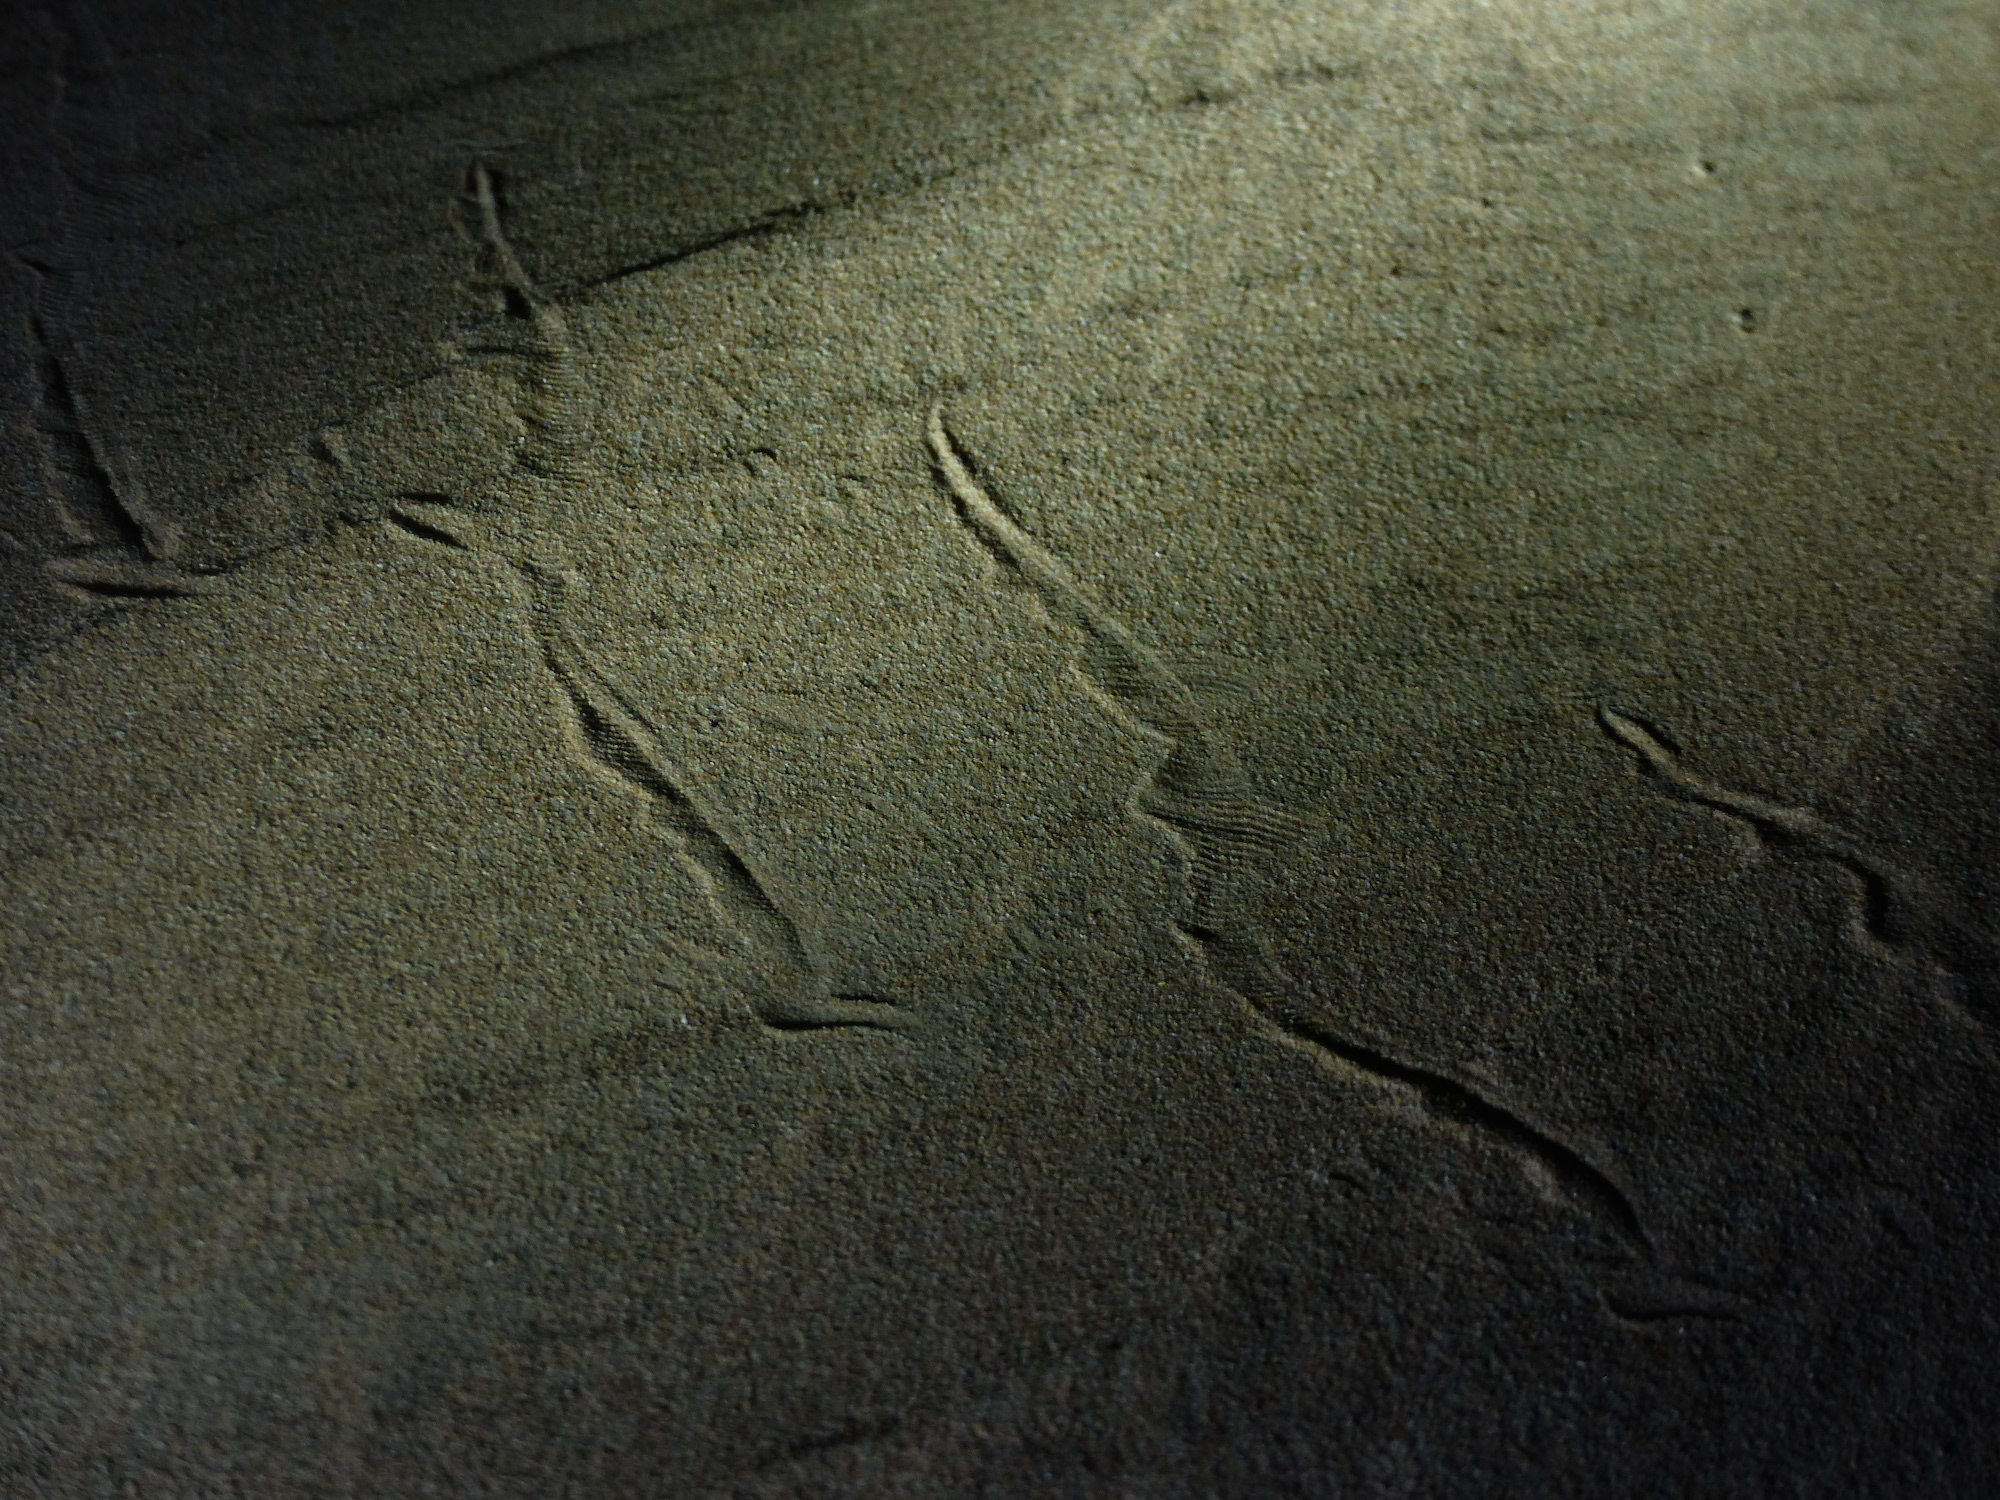 snake tracks in UAE